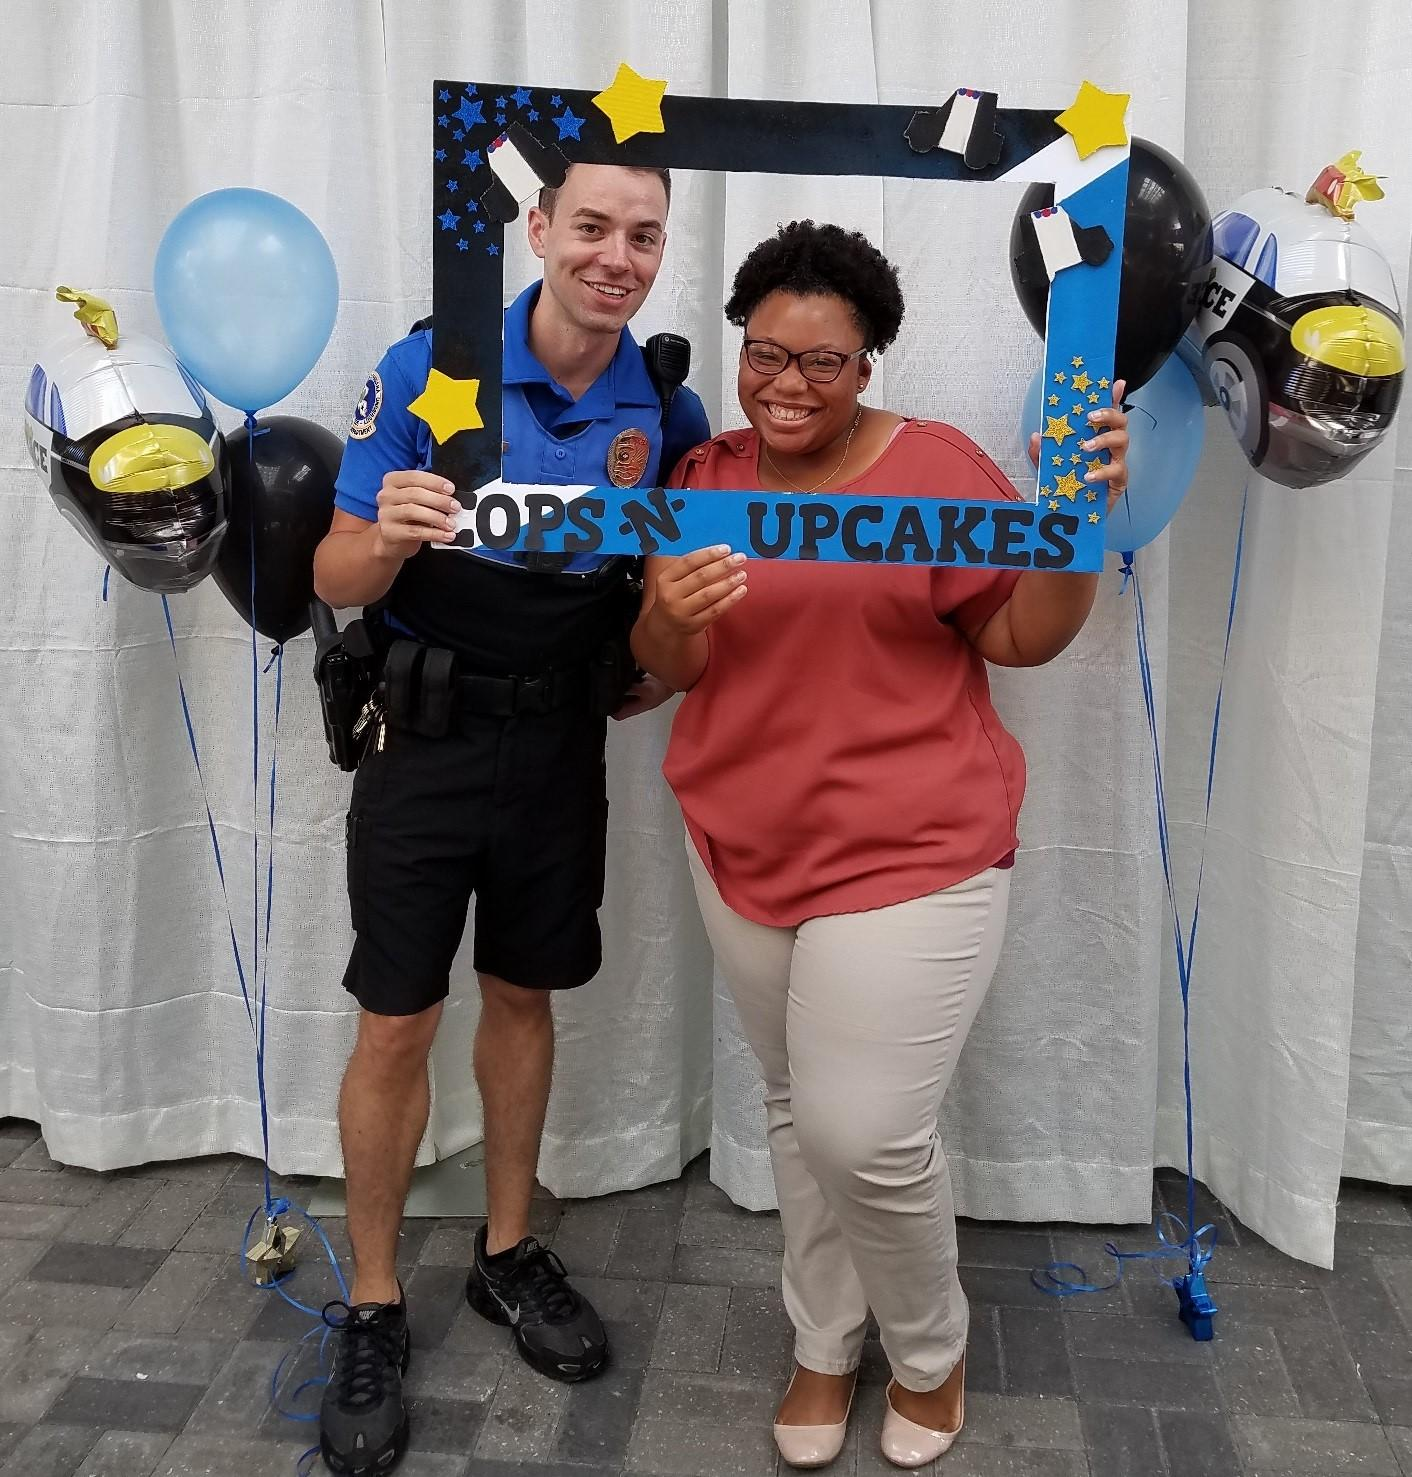 Cops and Cupcakes 2017